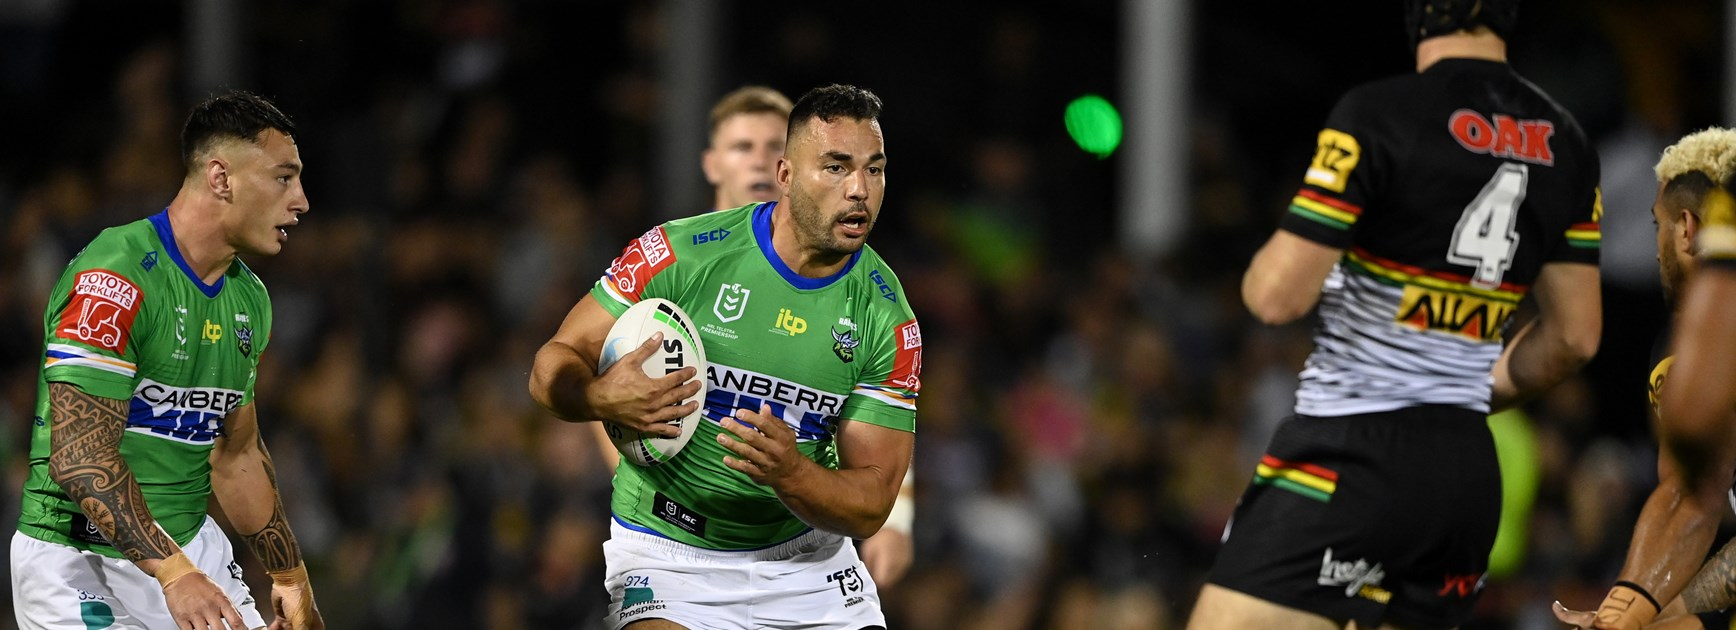 NRL Match Report: Raiders suffer Panthers defeat